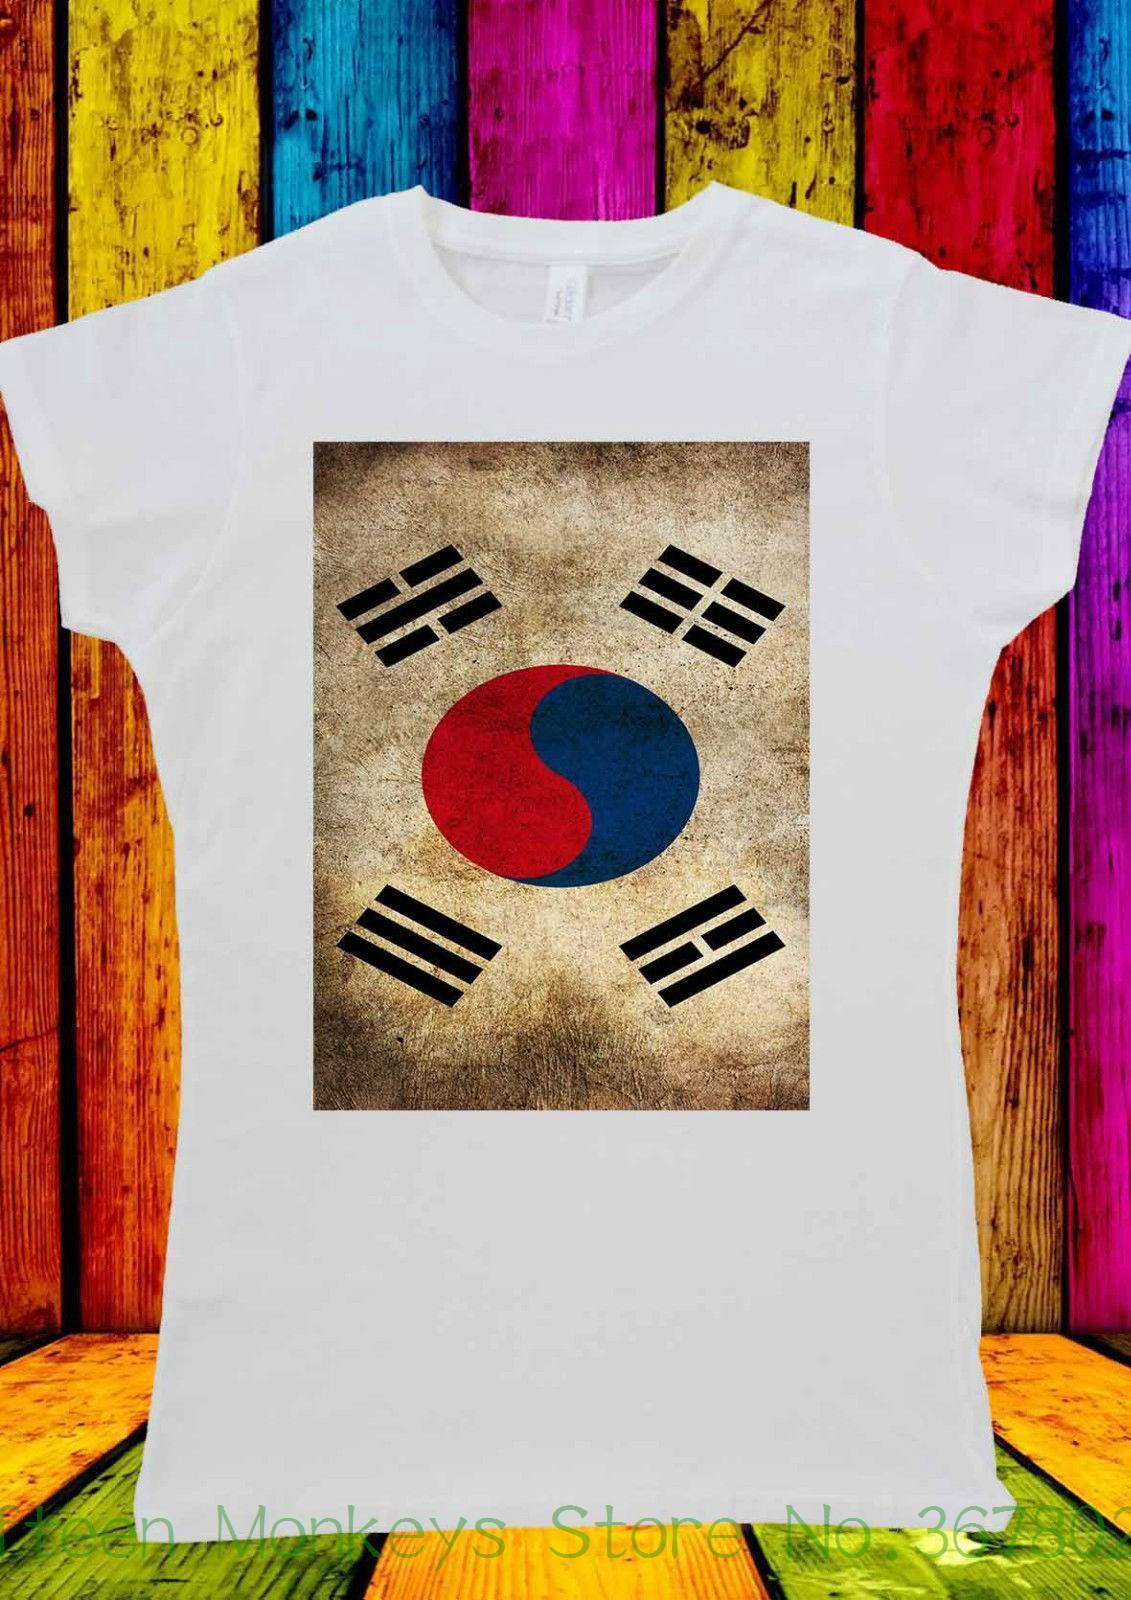 Women's Tee Korean Flag South Korea Seoul T-shirt Men Women Unisex 1428 Printed T Shirts Women